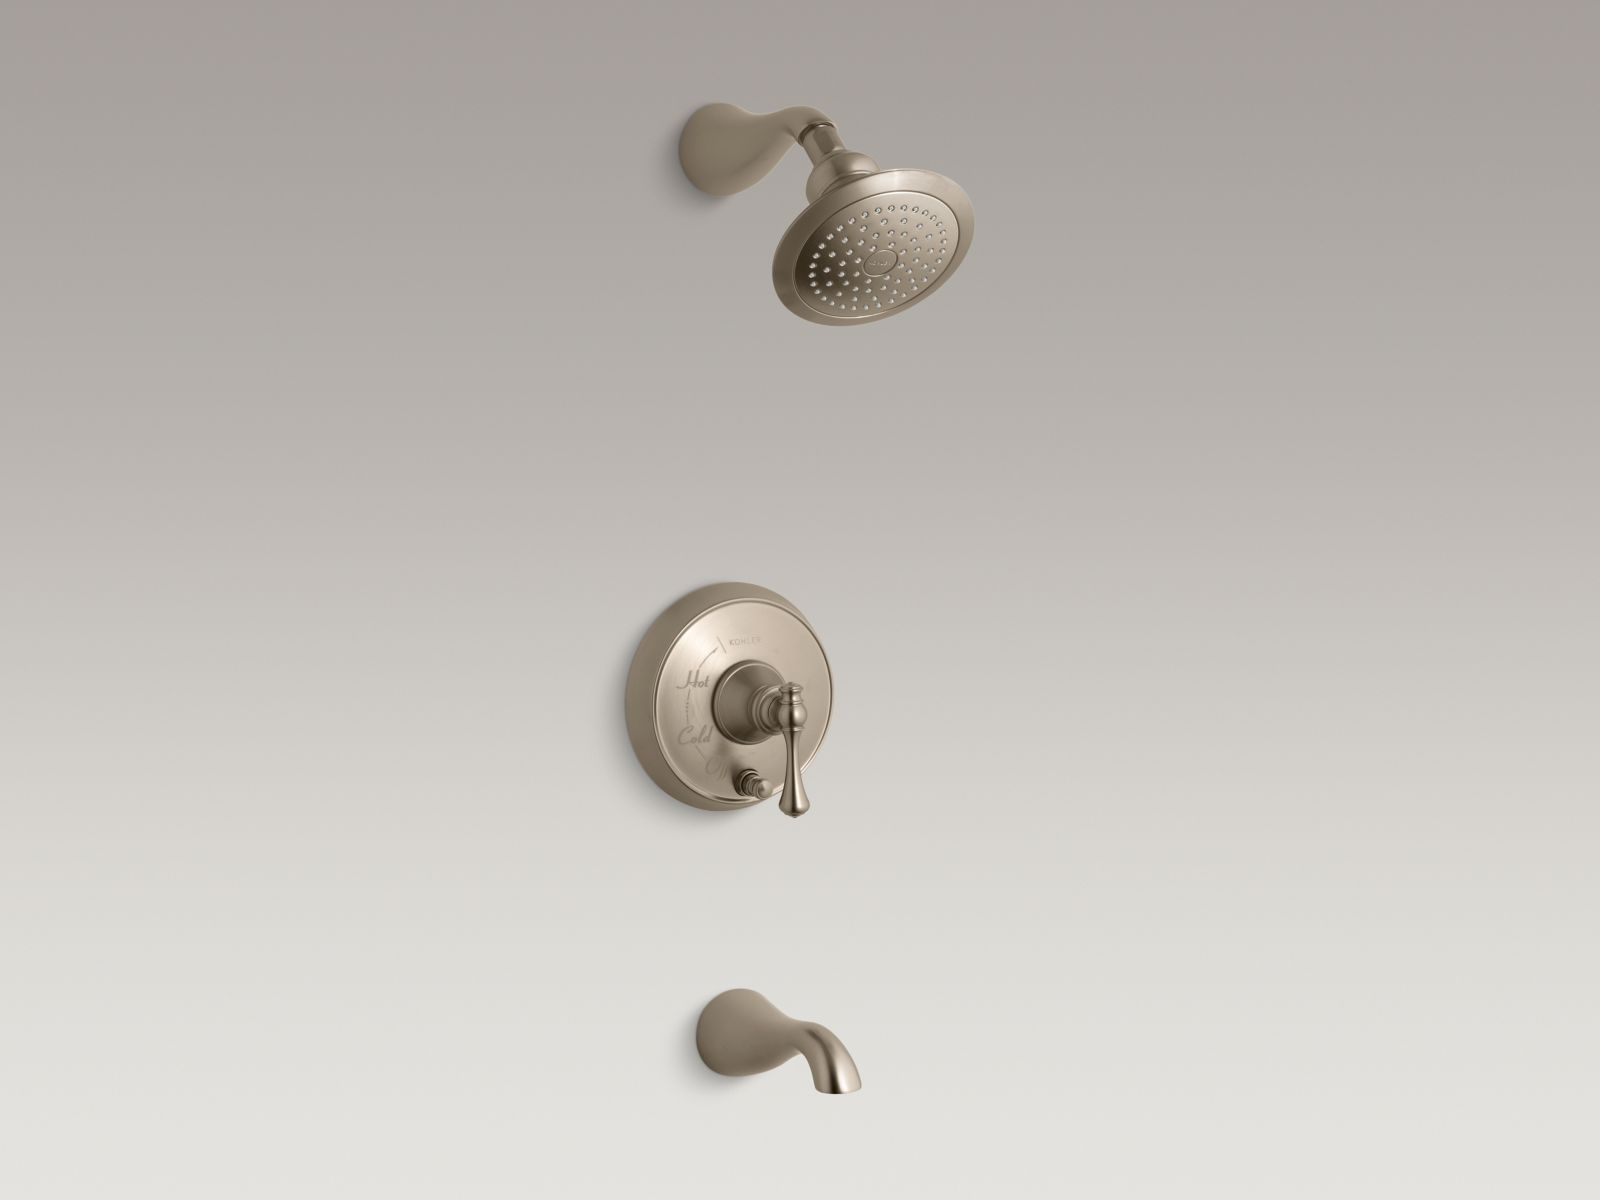 Kohler Revival® K-T16115-4A-BV Rite-Temp® pressure-balancing bath and shower faucet trim with push-button diverter and traditional lever handle, valve not included Vibrant Brushed Bronze